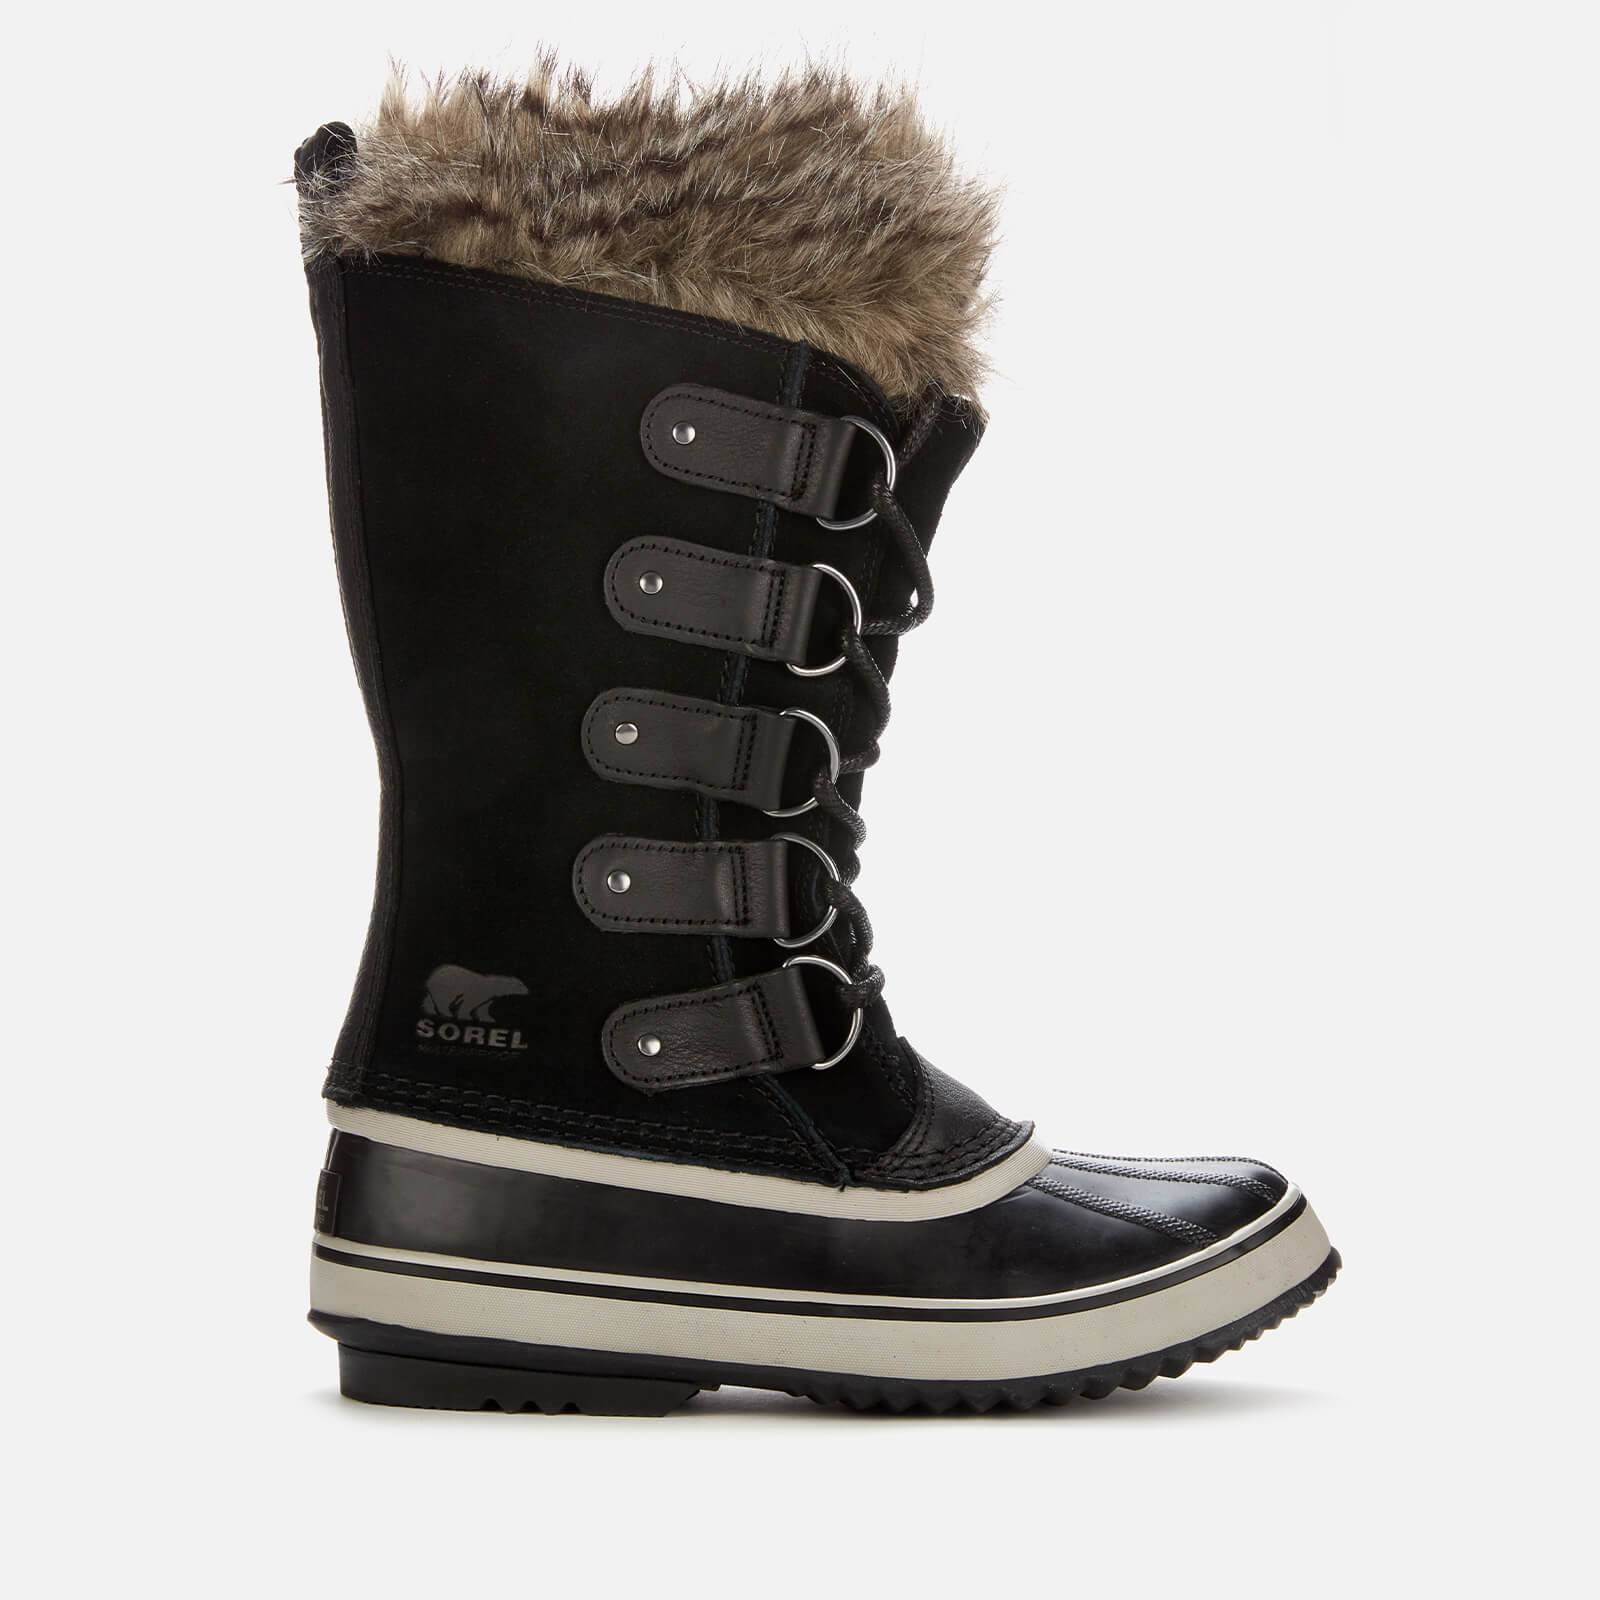 Sorel Women's Joan Of Arctic Waterproof Suede Knee High Winter Boots - Black/Quarry - UK 6